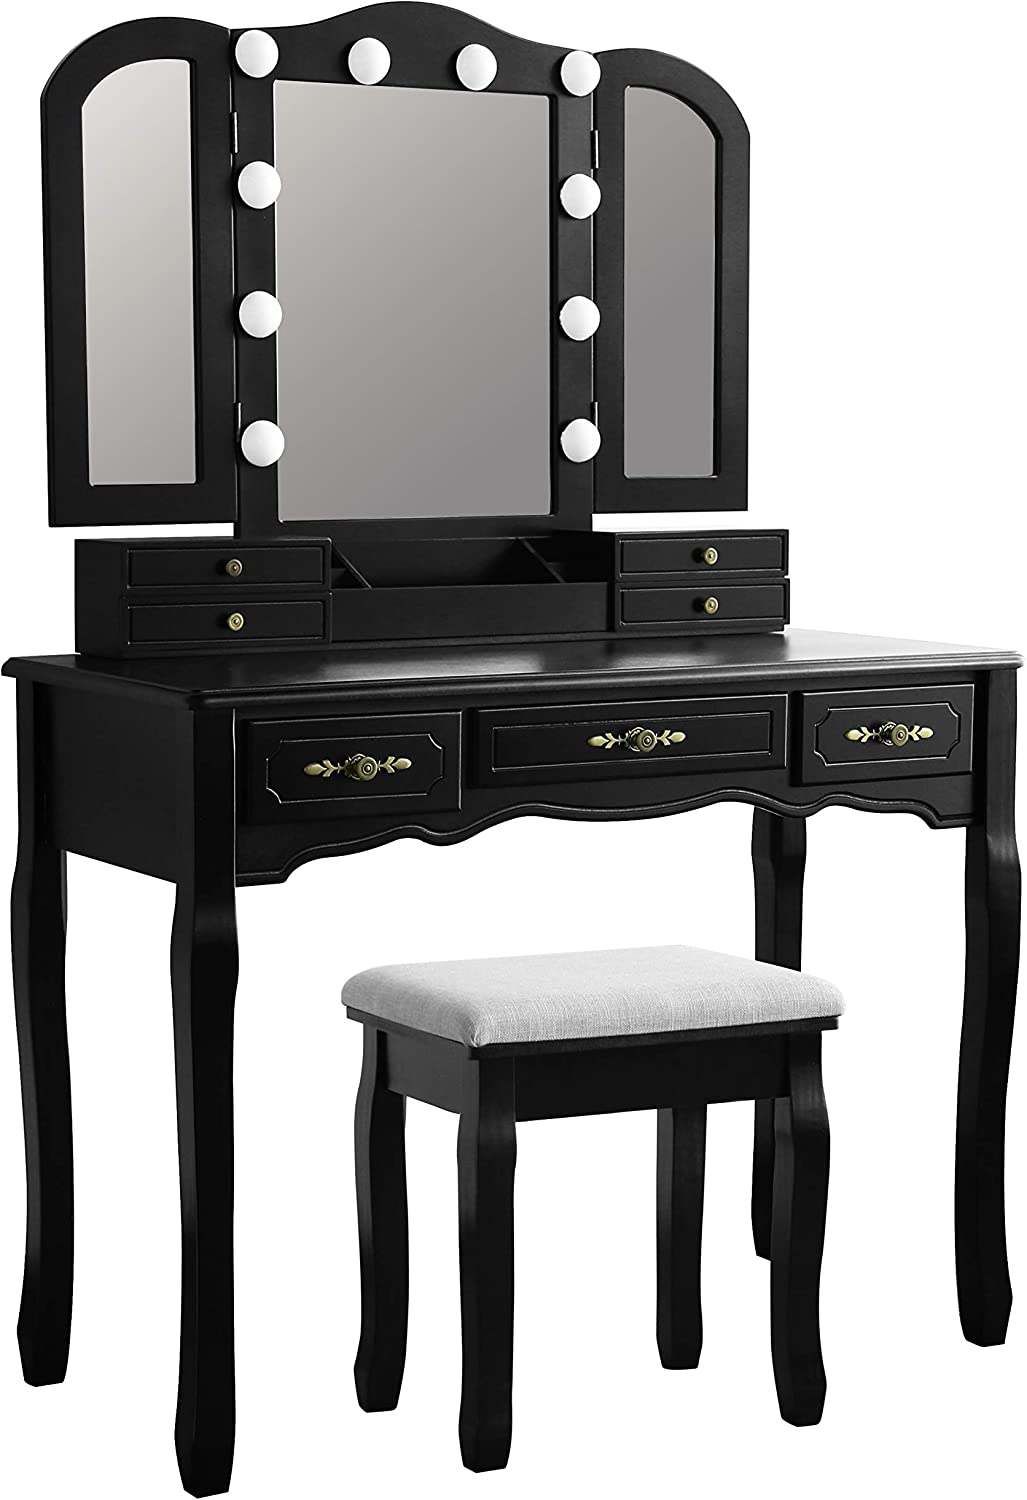 MUPATER Omaha Mall Makeup Vanity Desk Set Mirror Light Dr with Tri-Folding Ranking TOP7